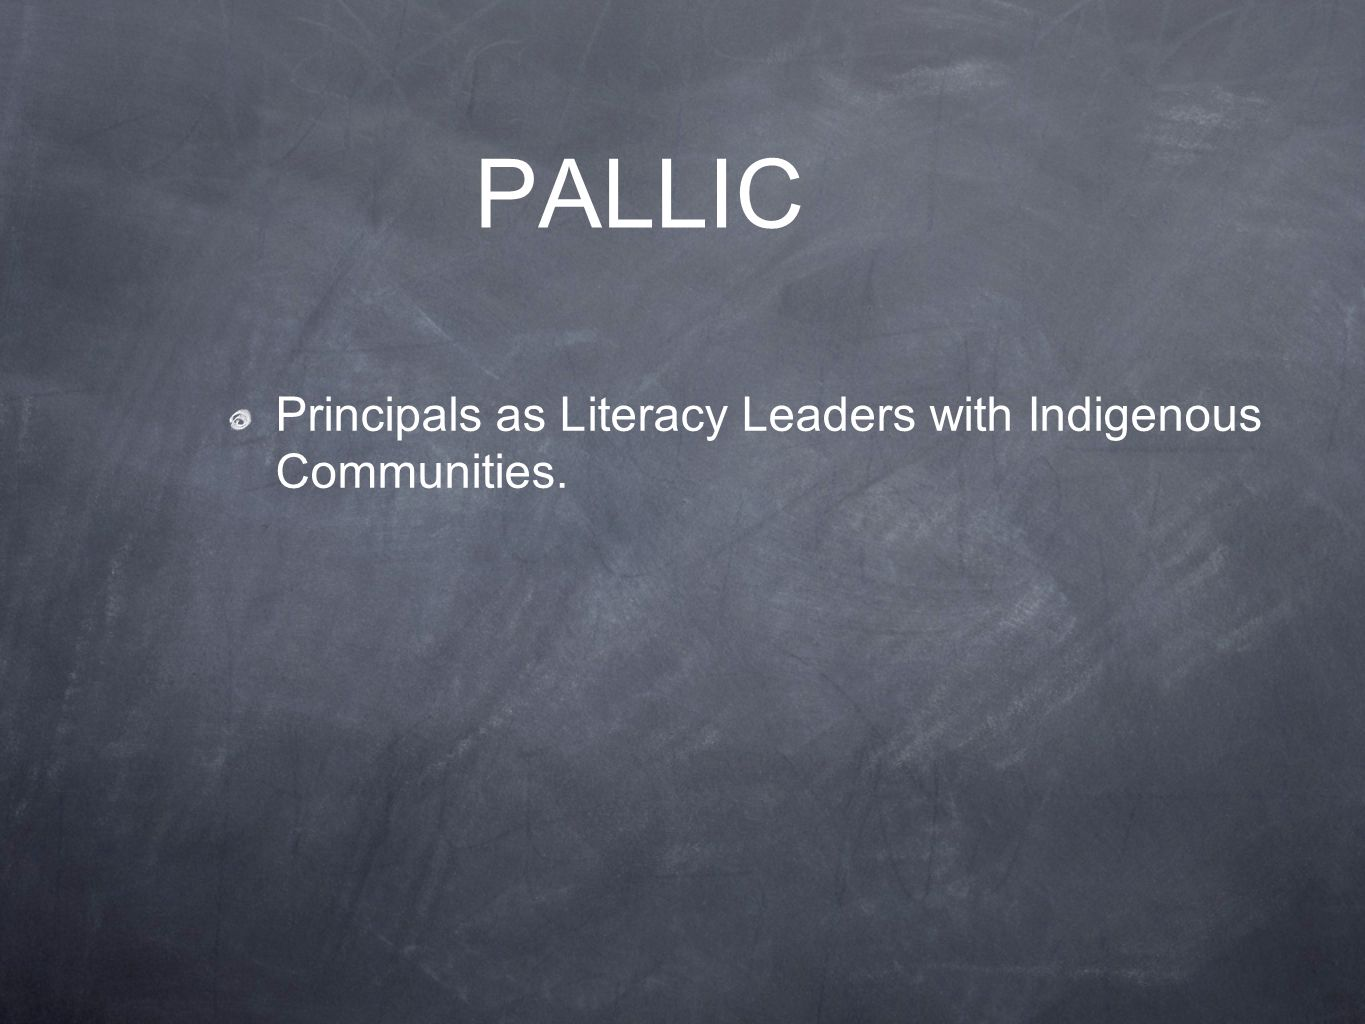 PALLIC Principals as Literacy Leaders with Indigenous Communities.